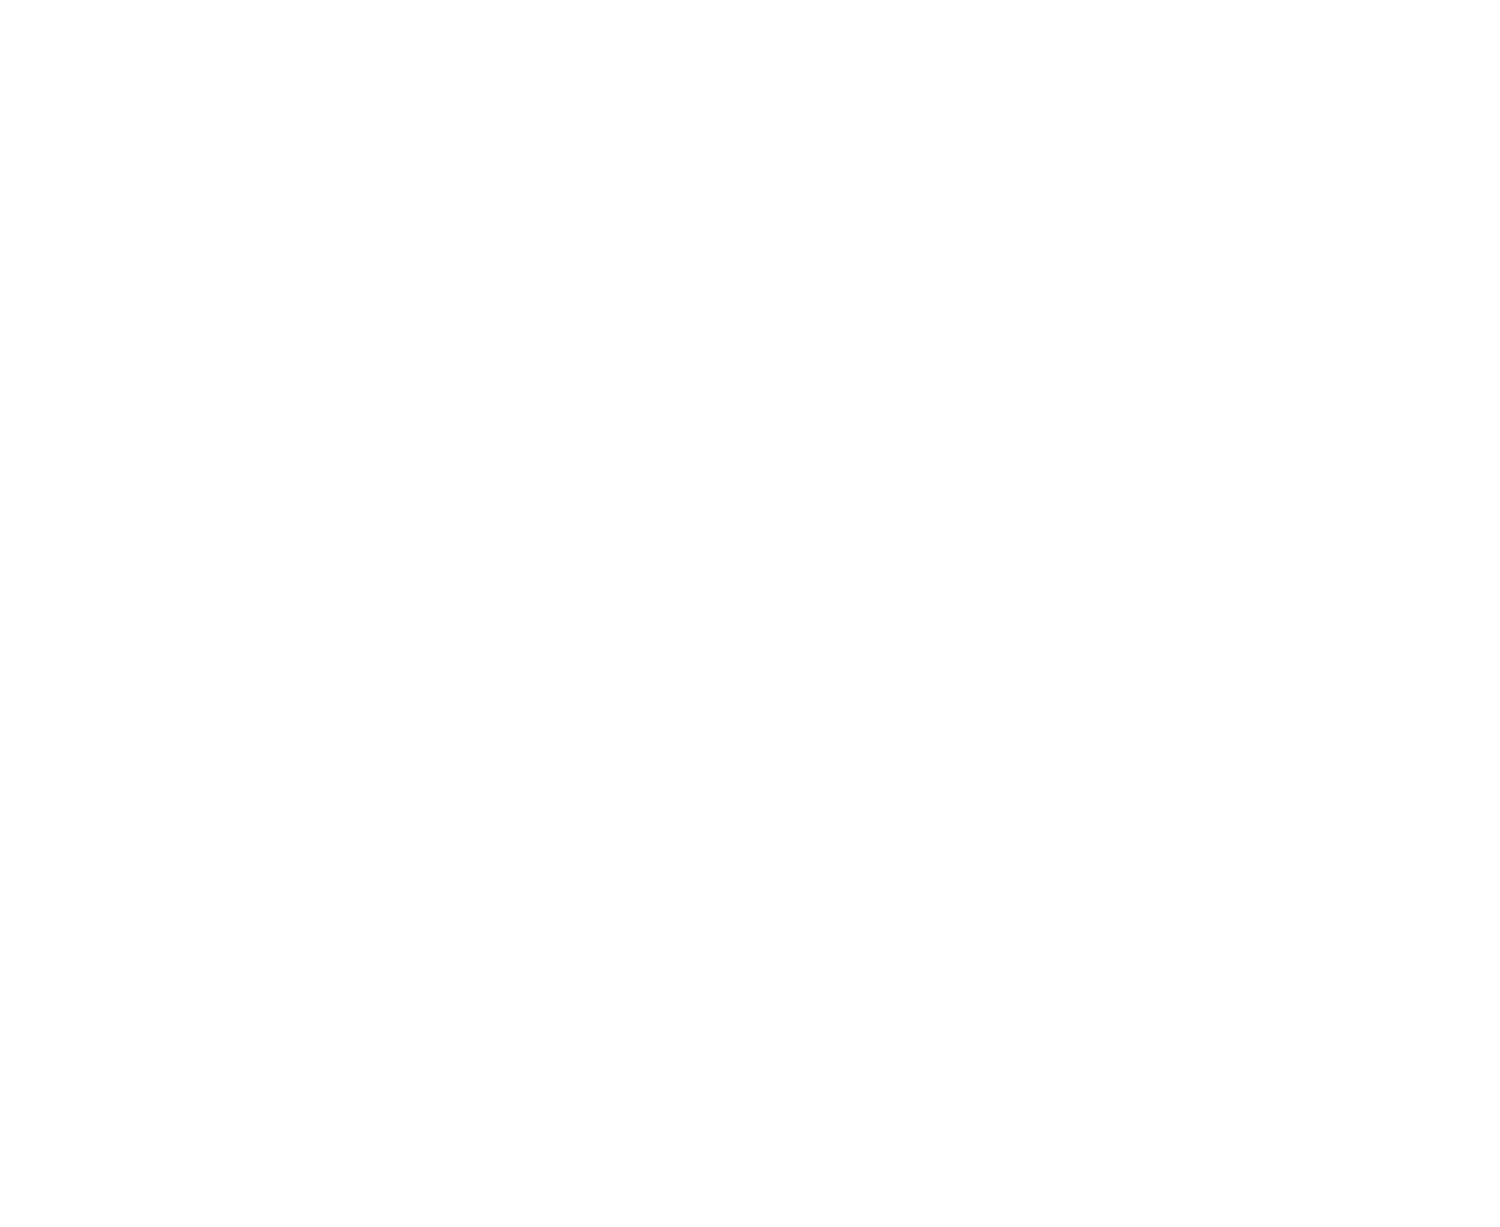 El Estanco